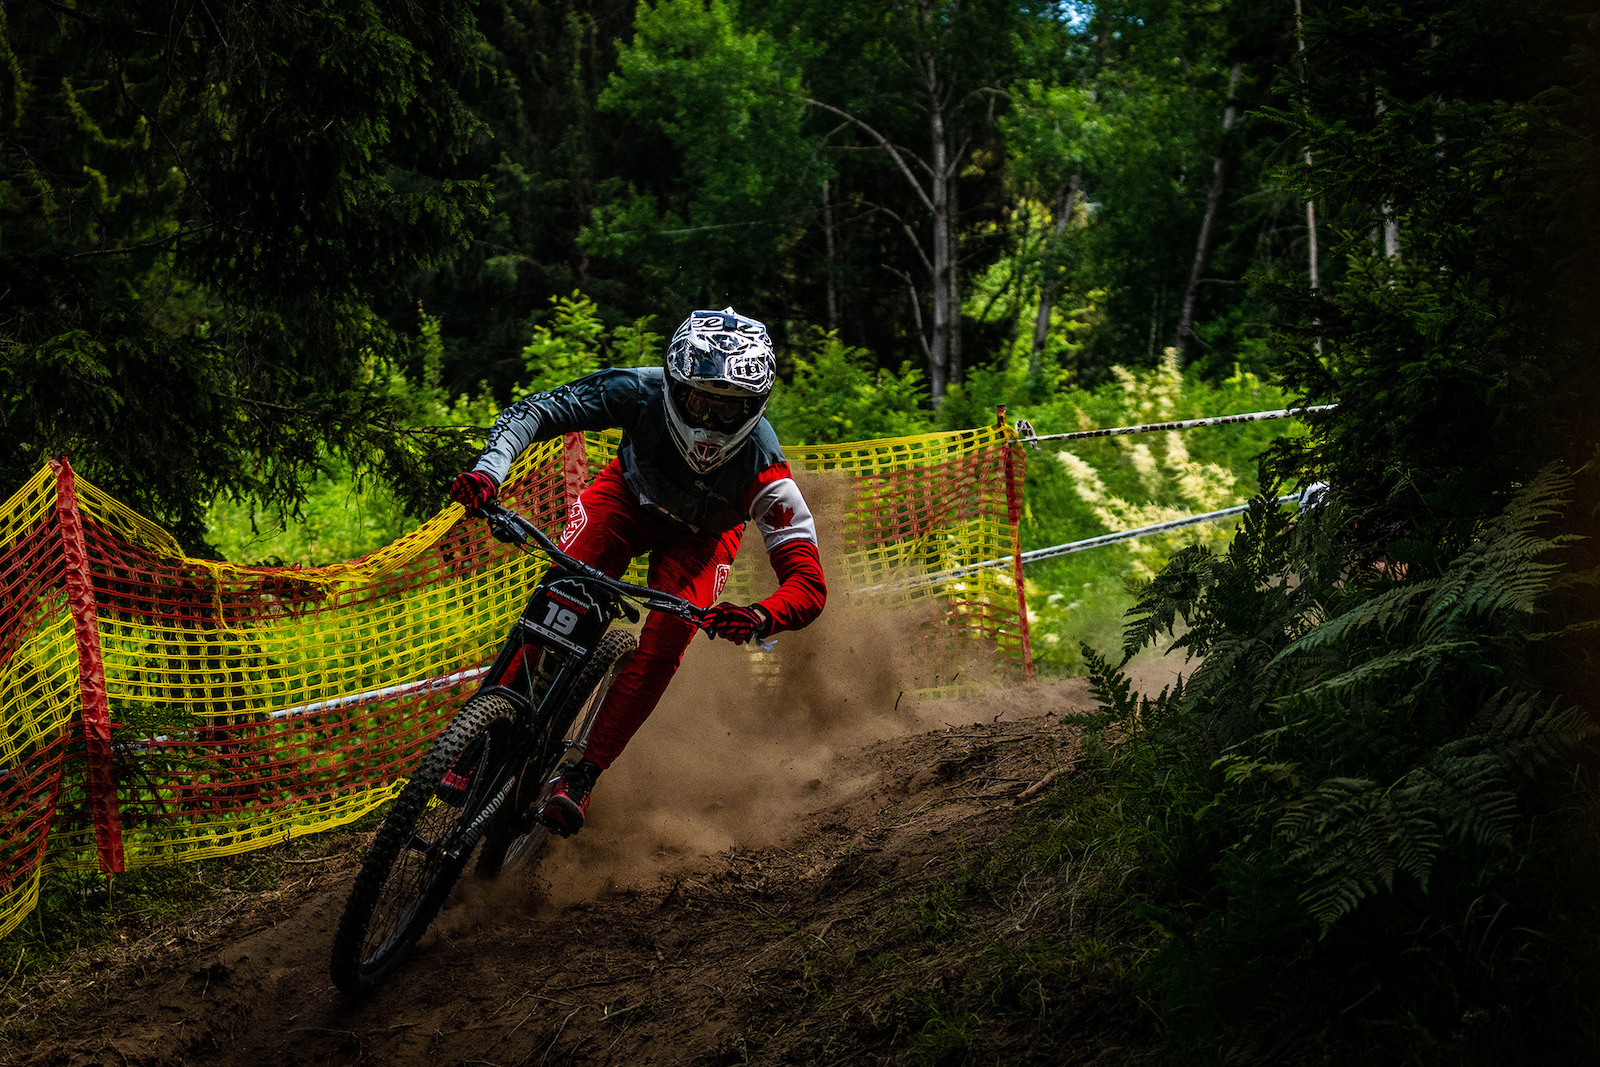 Canadian rider Kirk McDowell missed the podium by 0.01 of a second. It s incredible to think how close the times are in downhill racing these days.